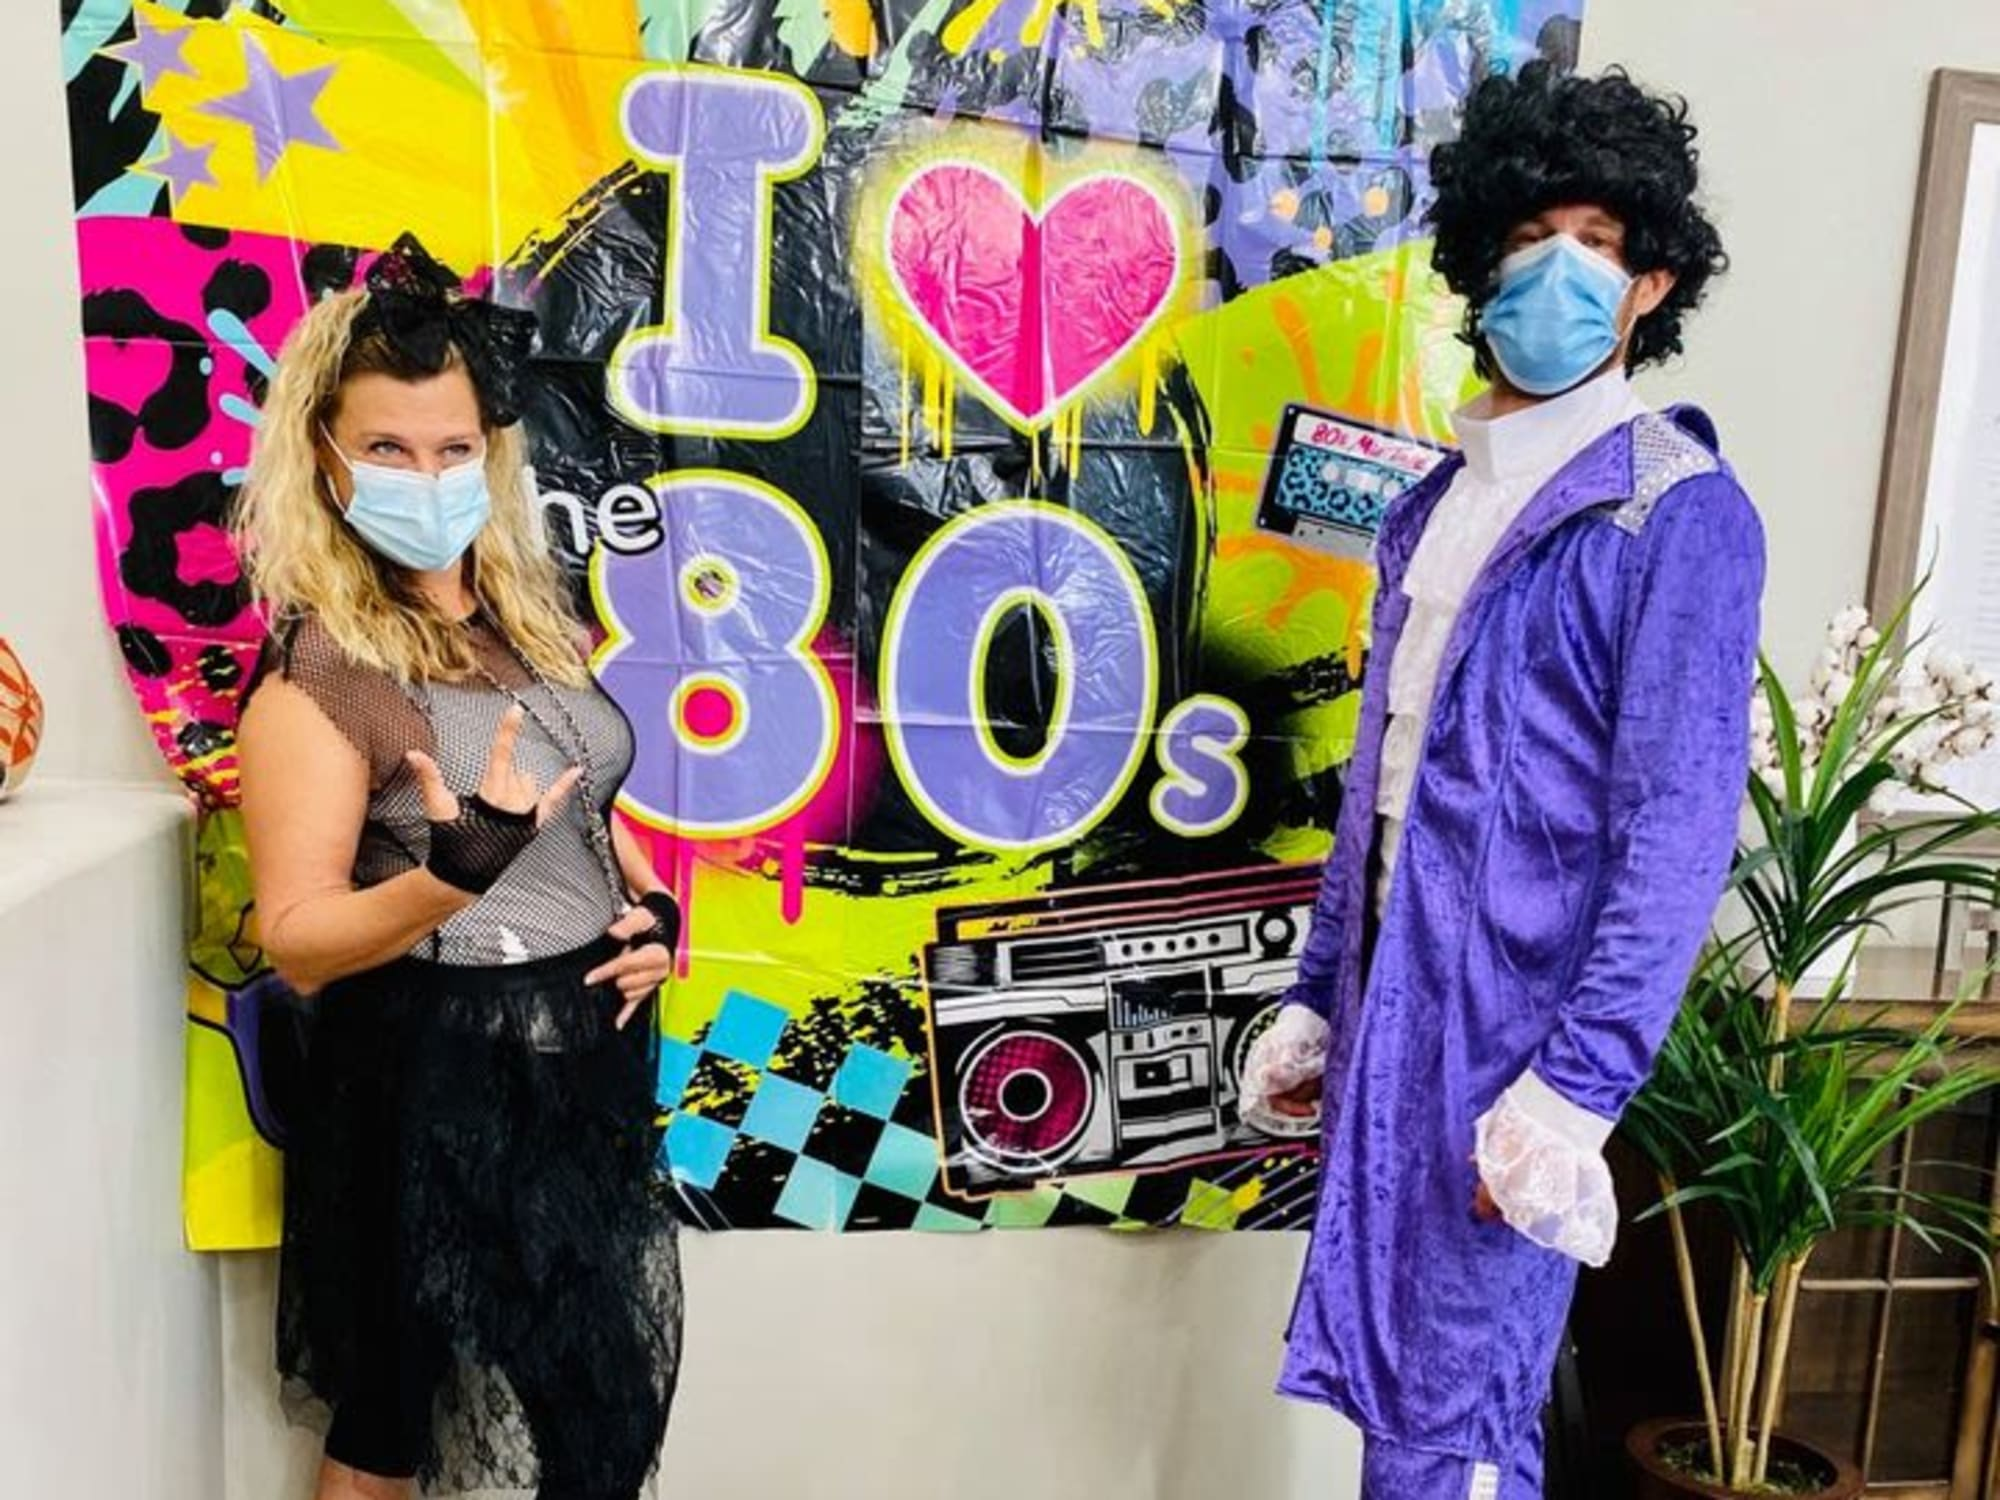 80s party at Hacienda Del Rey in Litchfield Park, AZ